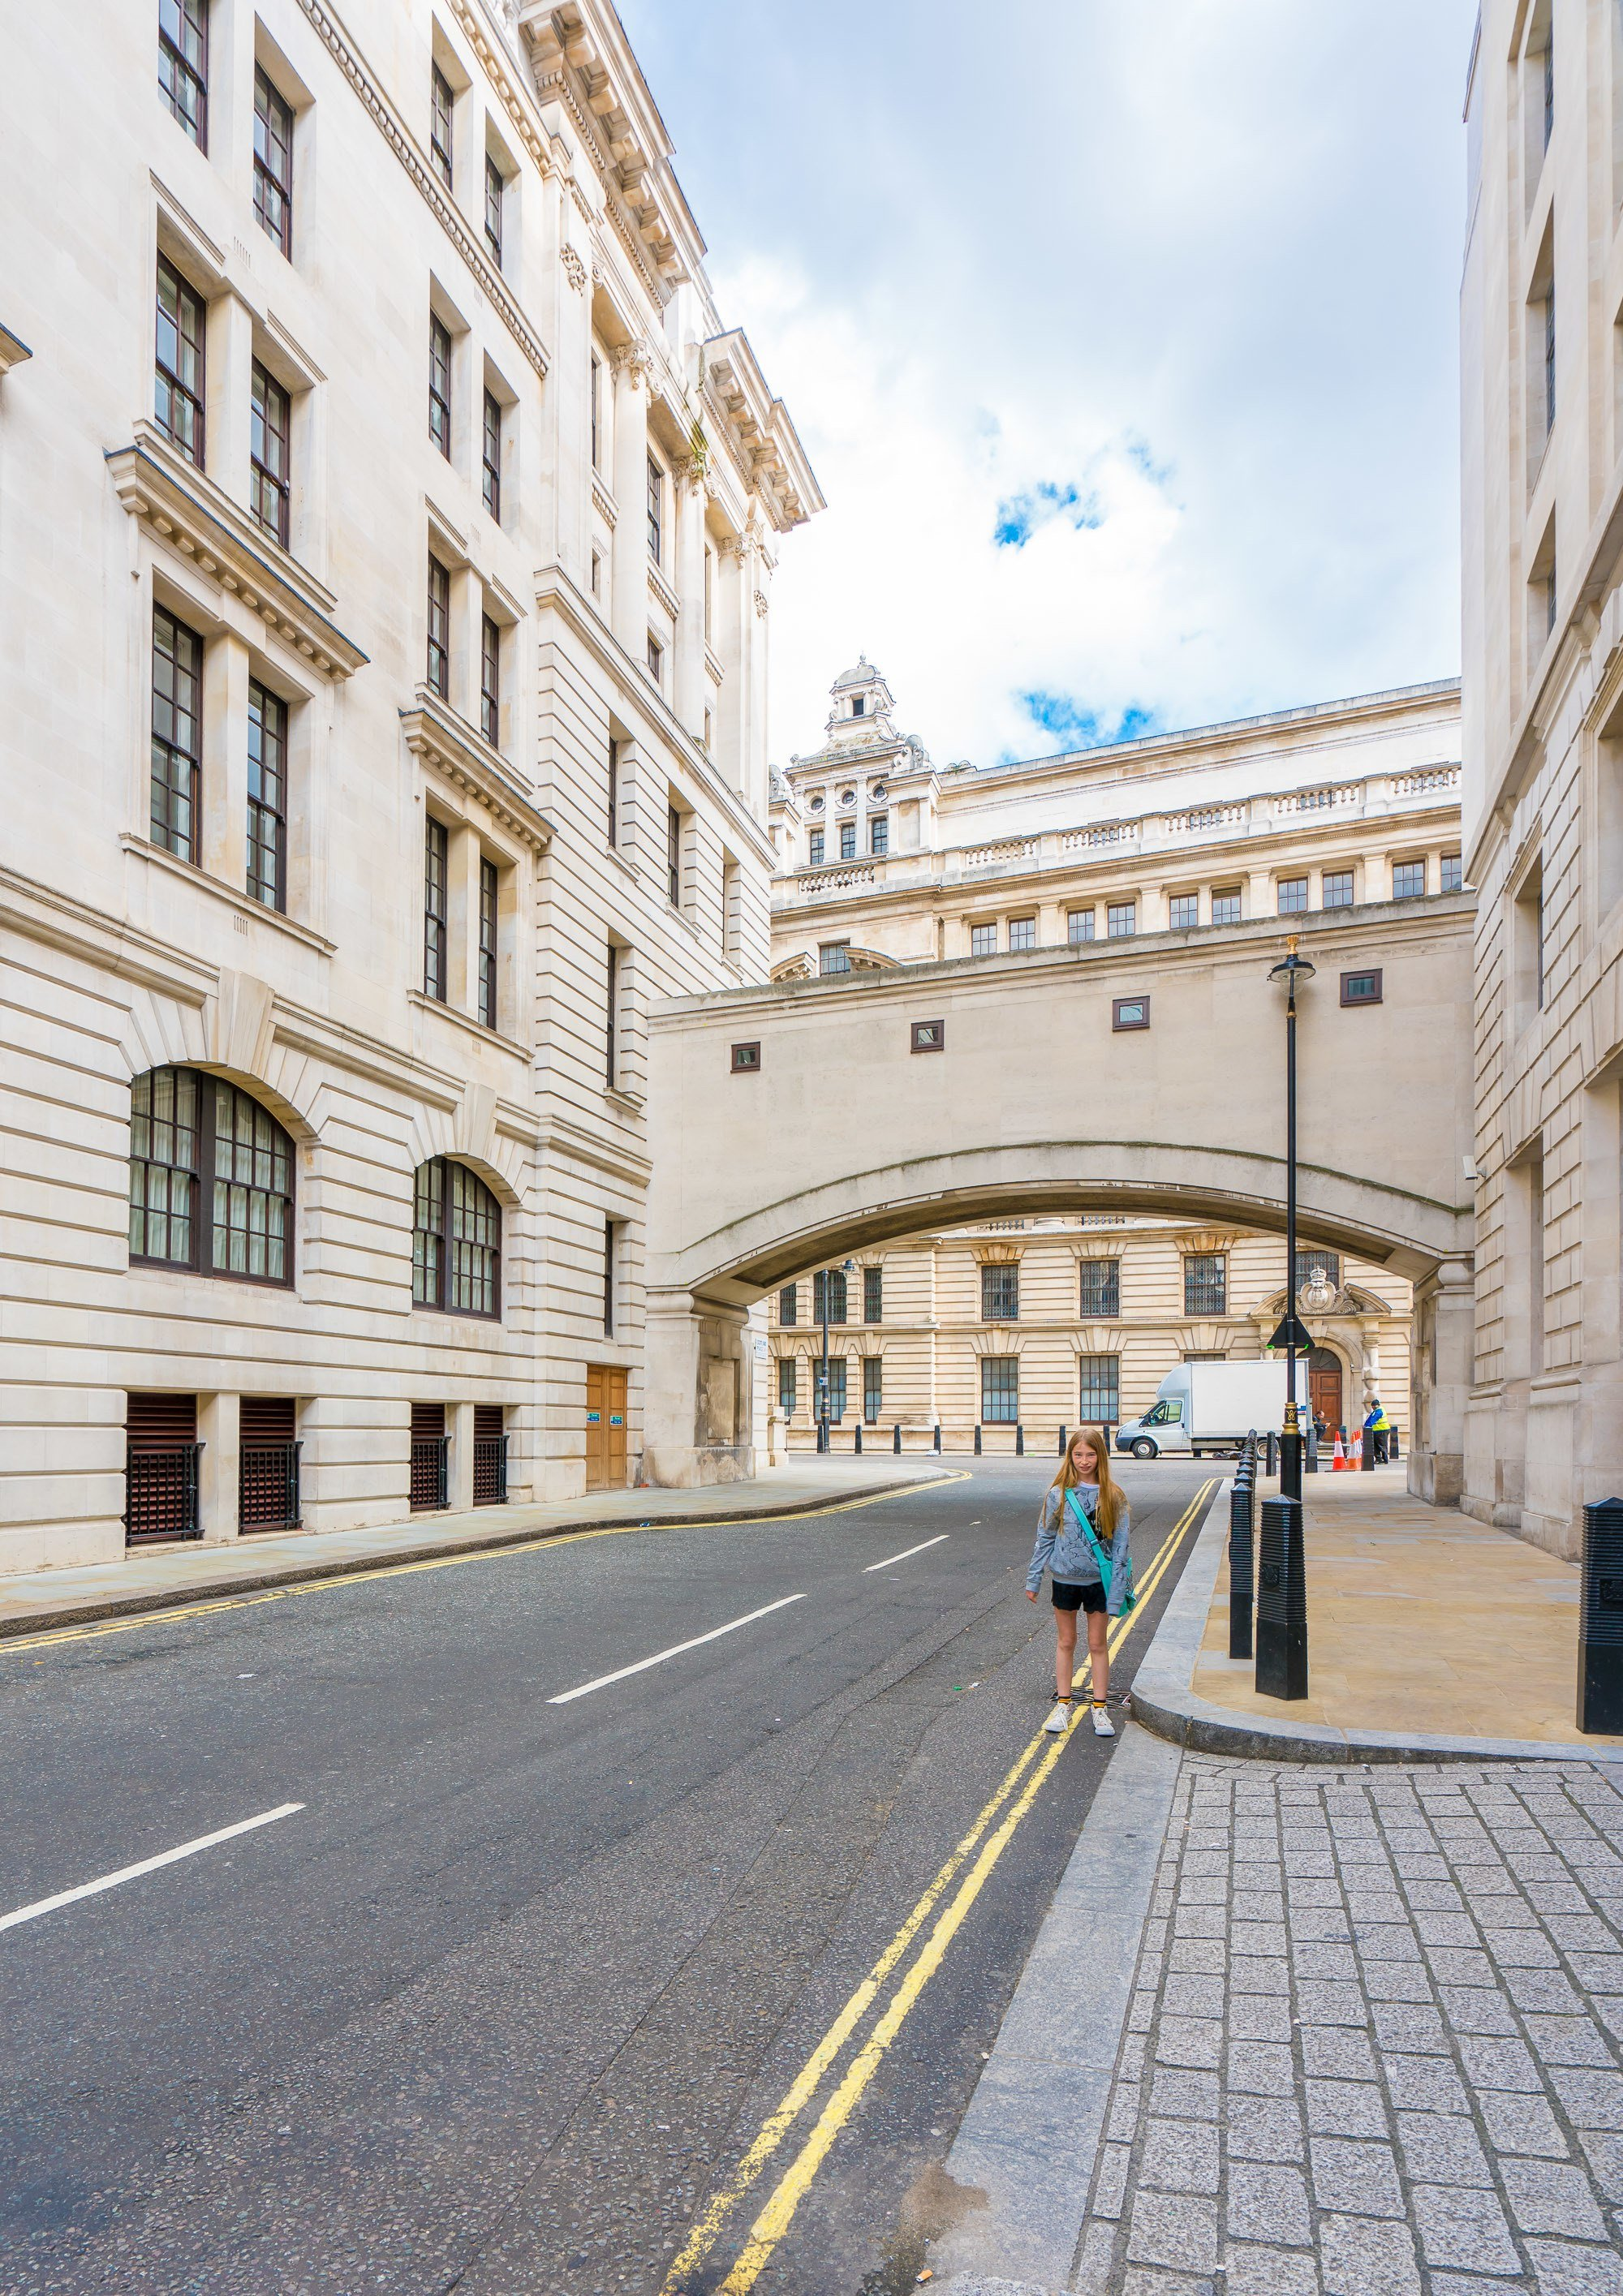 This area of New Scotland Yard in London is the entrance to the Ministry of Magic in the Harry Potter movies.